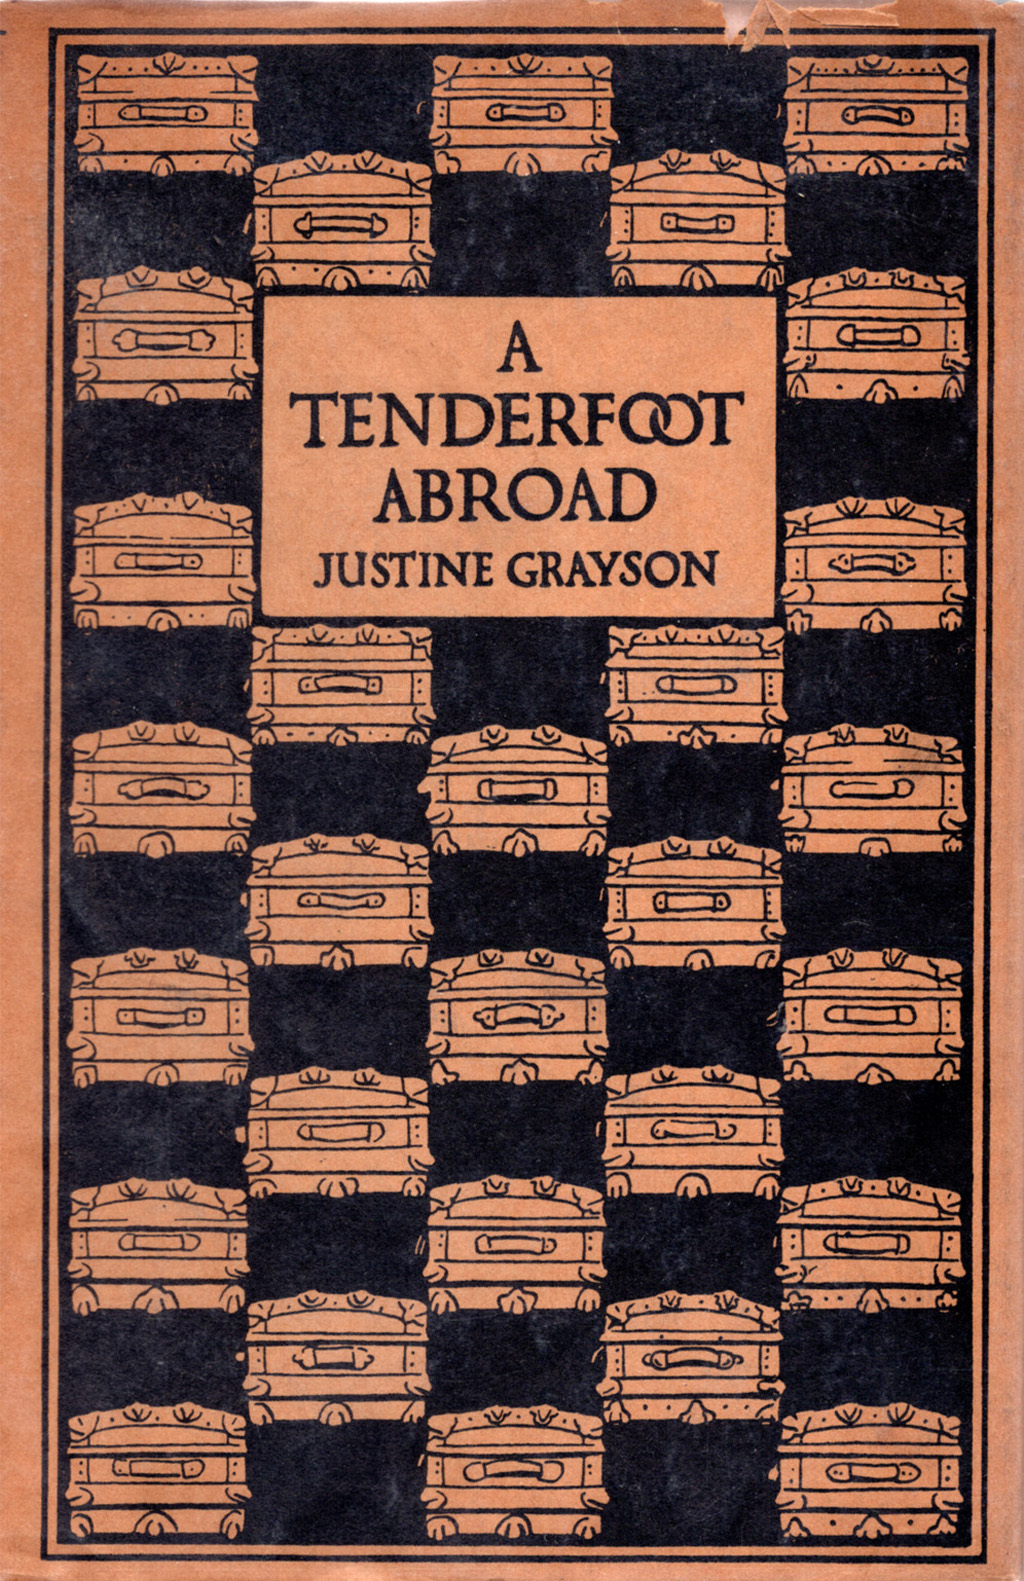 Jacket for A Tenderfoot Abroad by Justin Grayson (Boston: W.A. Butterfield, 1907). Design, illustration and lettering by W.A. Dwiggins. Printing by The Merrymount Press.